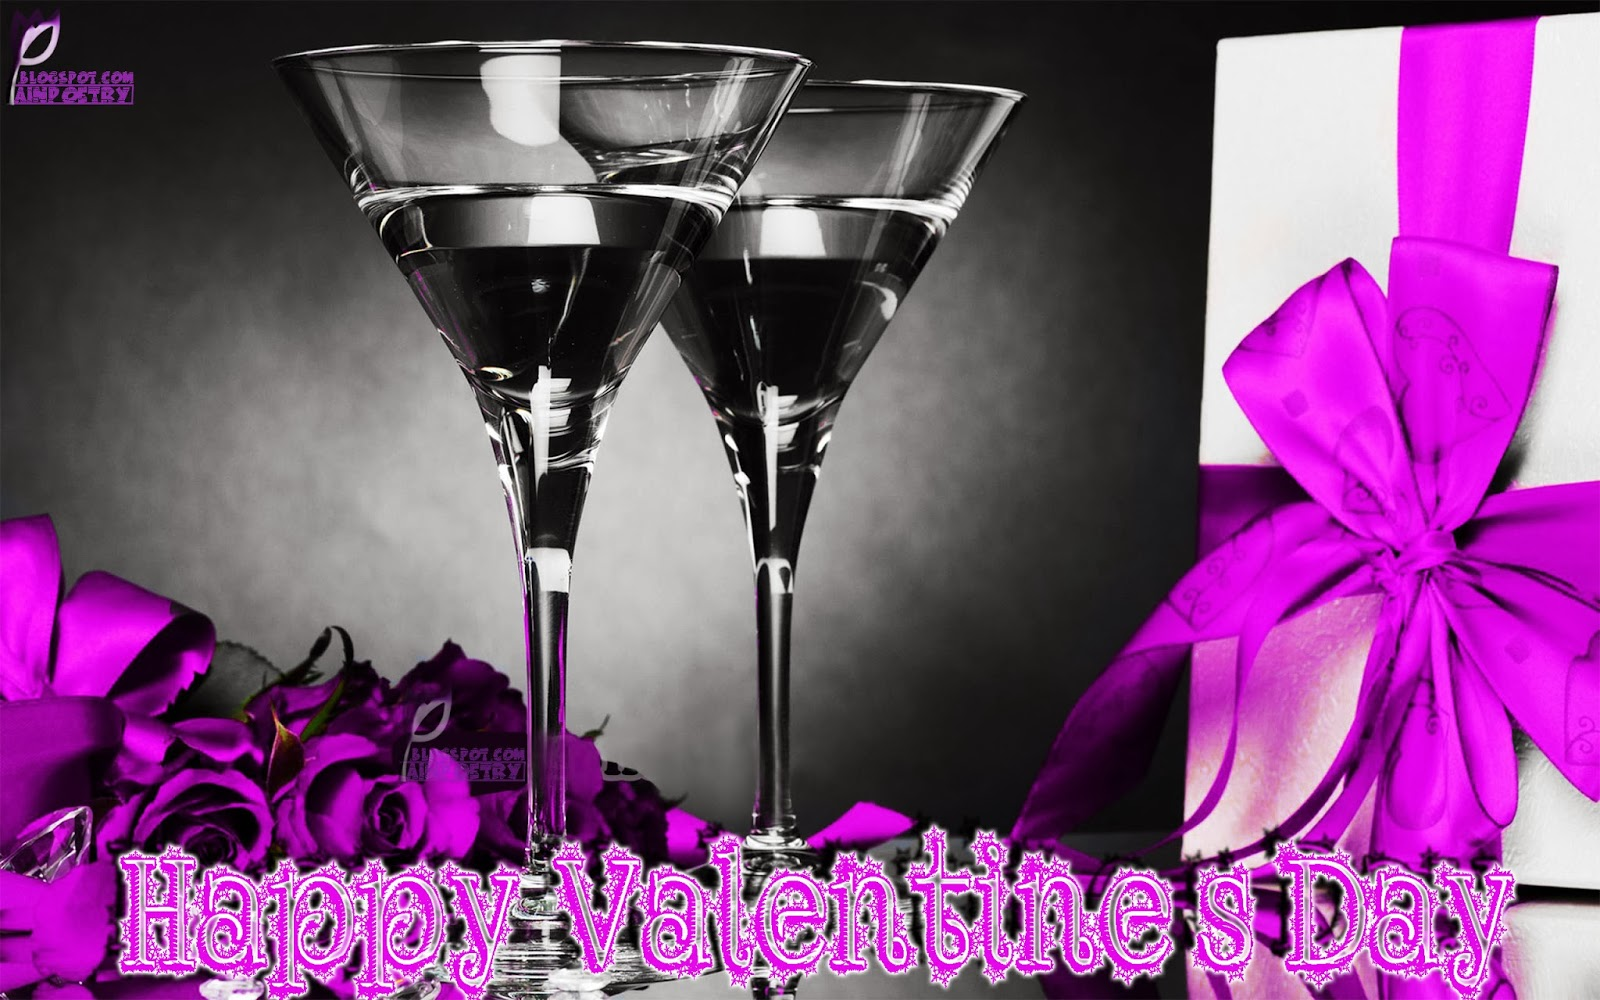 Happy-Valentines-Day-Wishes-Wallpapaper-With-A-Special-Gift-Image-HD-Wide